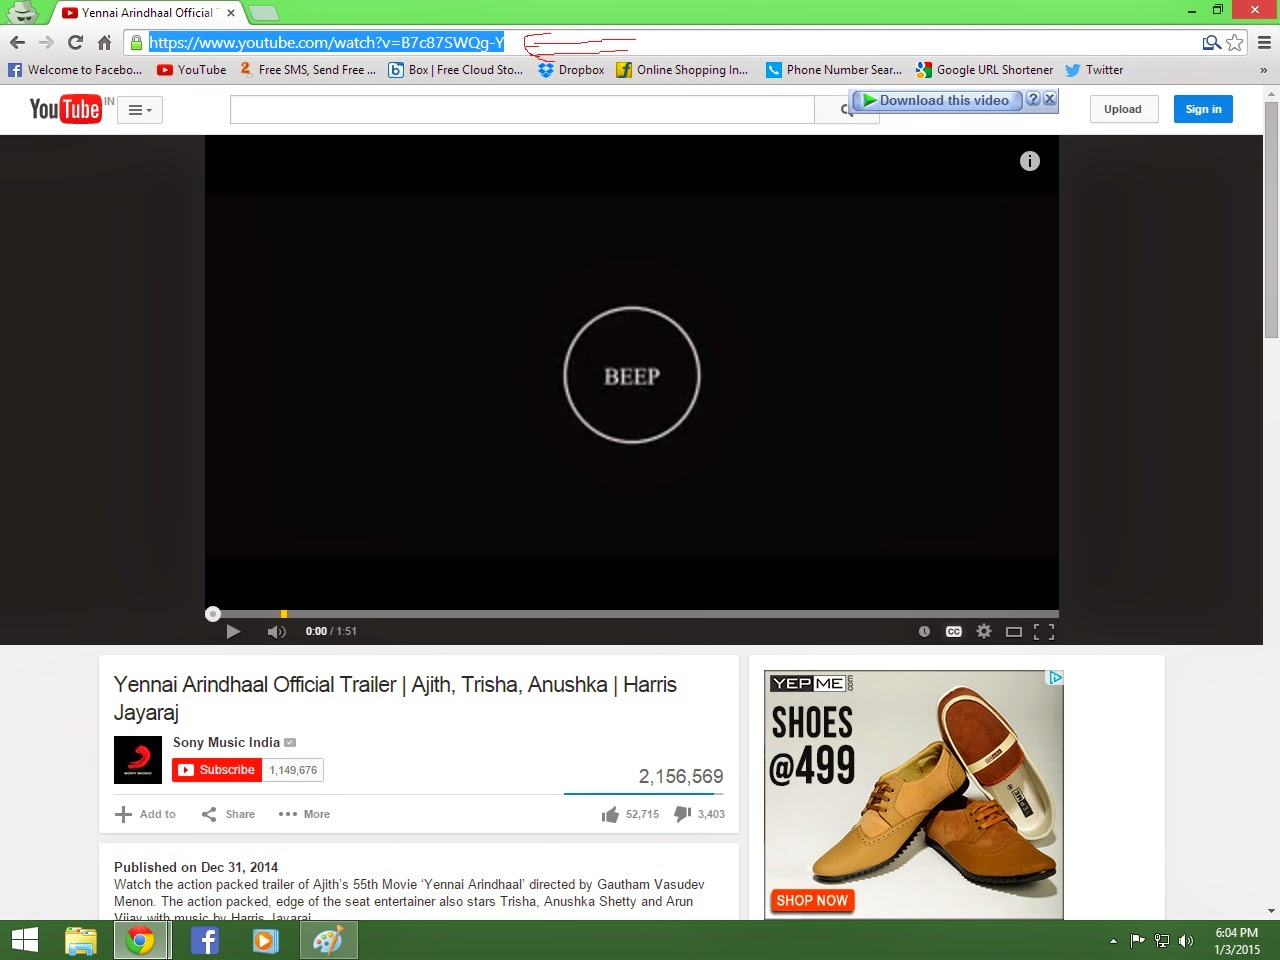 Download From The Youtube Navigate To The Url In The Address Bar Of  The Browsere Keyboard Shortcut Is F6